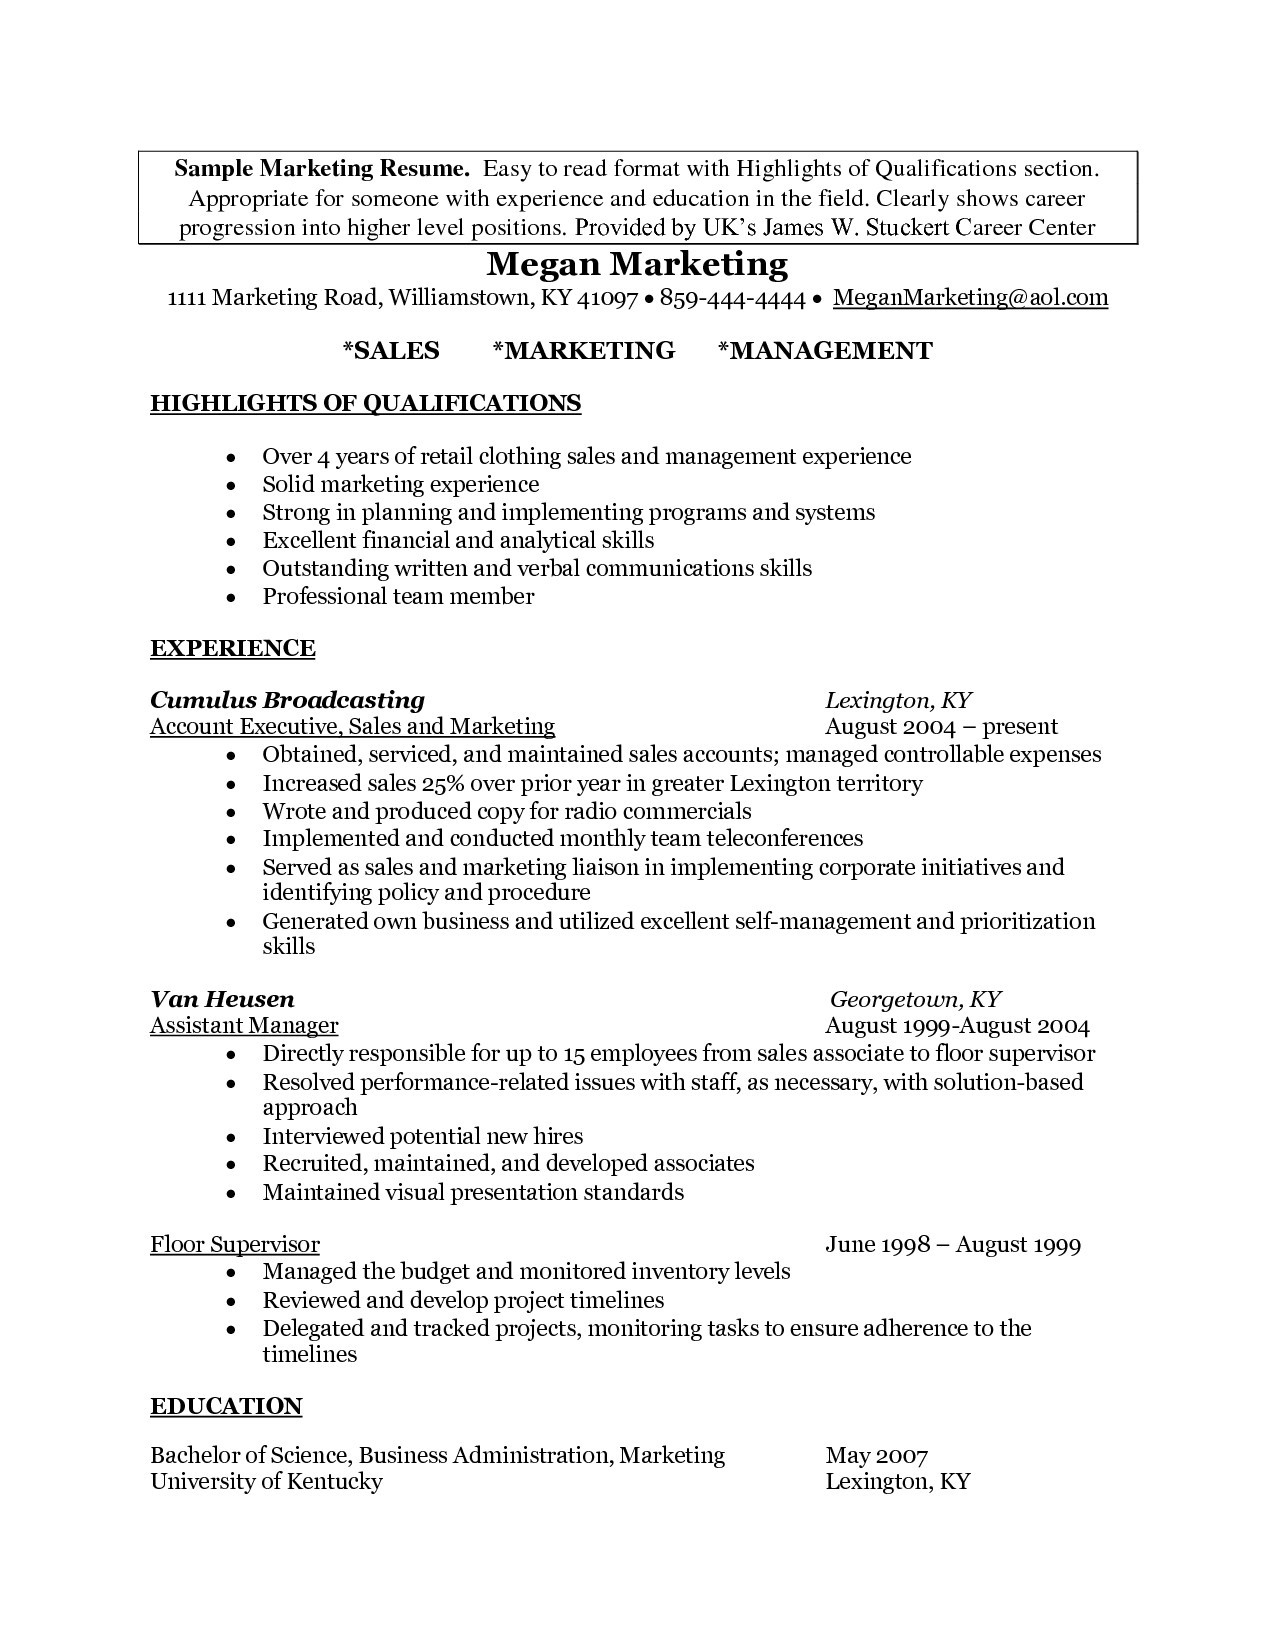 marketing manager resume template Collection-Marketing Manager Resume Fresh New Programmer Resume Lovely Resume Cover Letter formatted Resume 0d Marketing 2-a